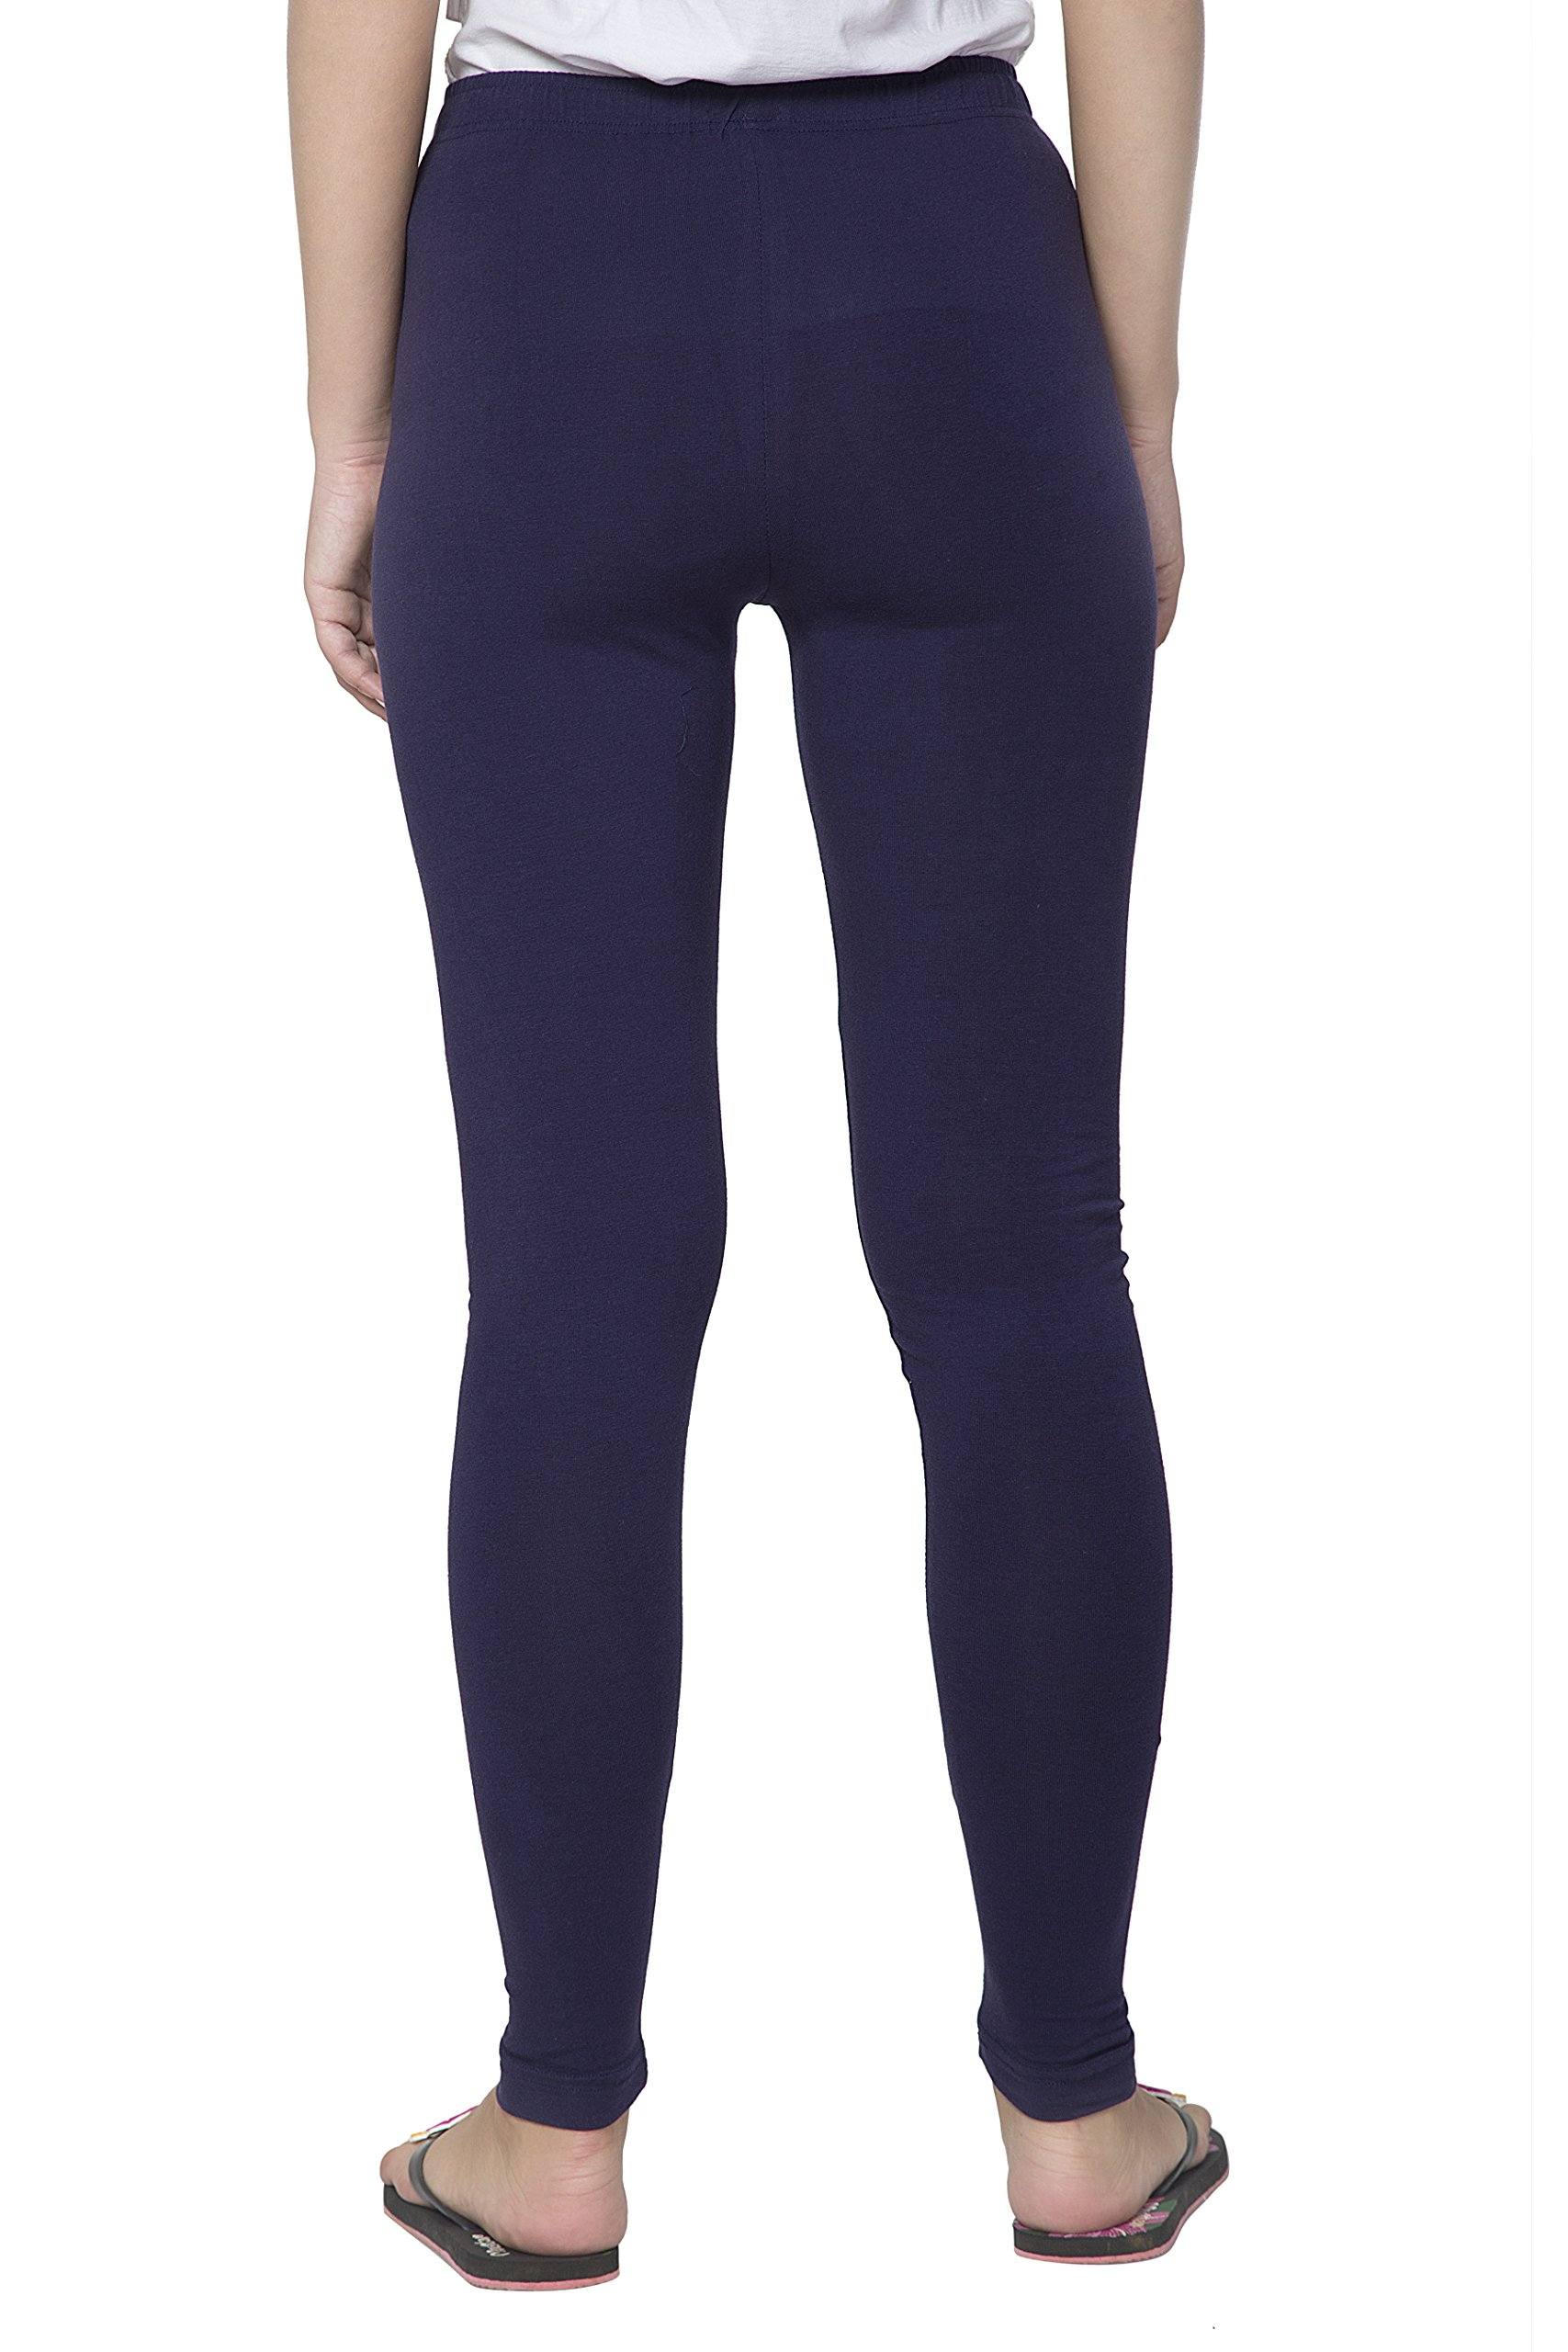 Clifton Women's Cotton Spandex Fine Jersey Leggings Pack Of 4-Assorted-2-XL by Clifton (Image #7)